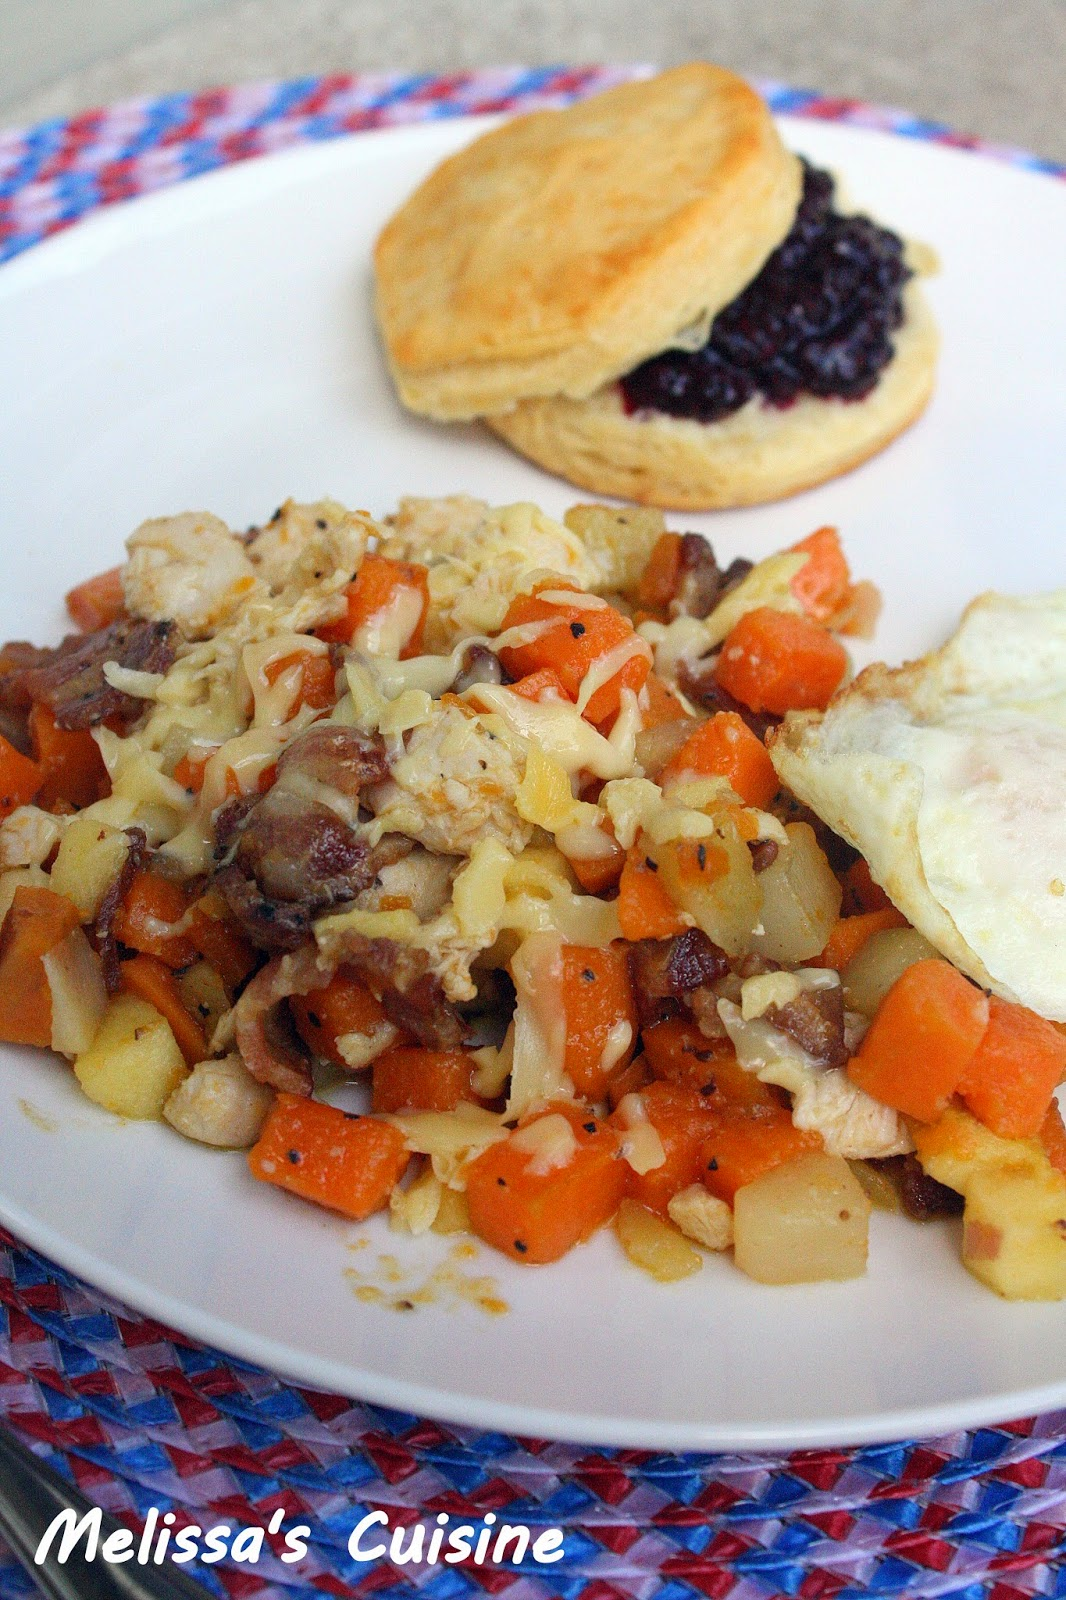 Melissa's Cuisine: Apple Chicken Potato Hash